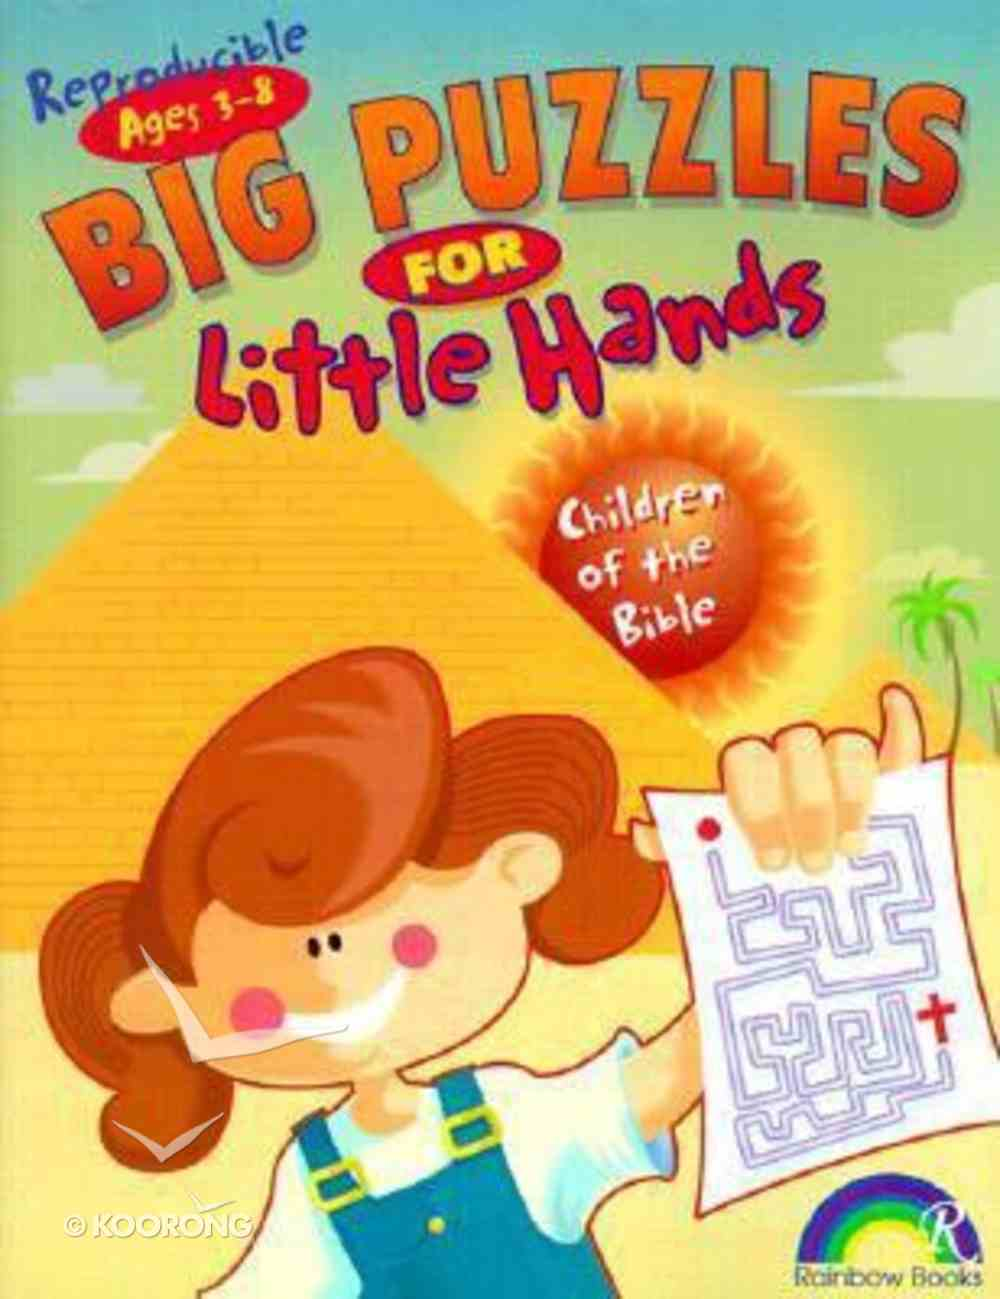 Big Puzzles For Little Hands: Children of the Bible (Reproducible) Paperback